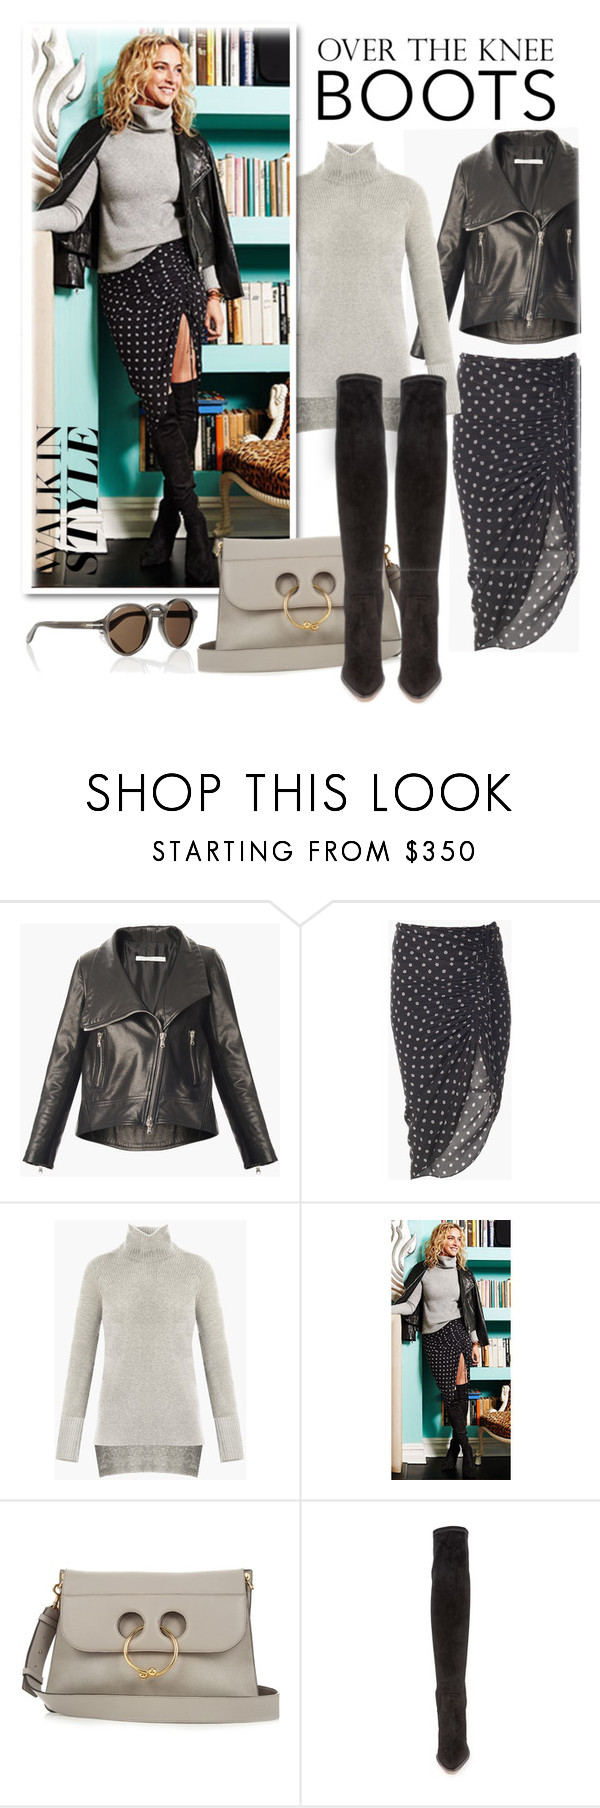 """""""Fall Footwear: Over-The-Knee Boots"""" by emavera ❤ liked on Polyvore featuring J.W. Anderson, Givenchy, Boots, RachelZoe, jwanderson and VeronicaBeard"""